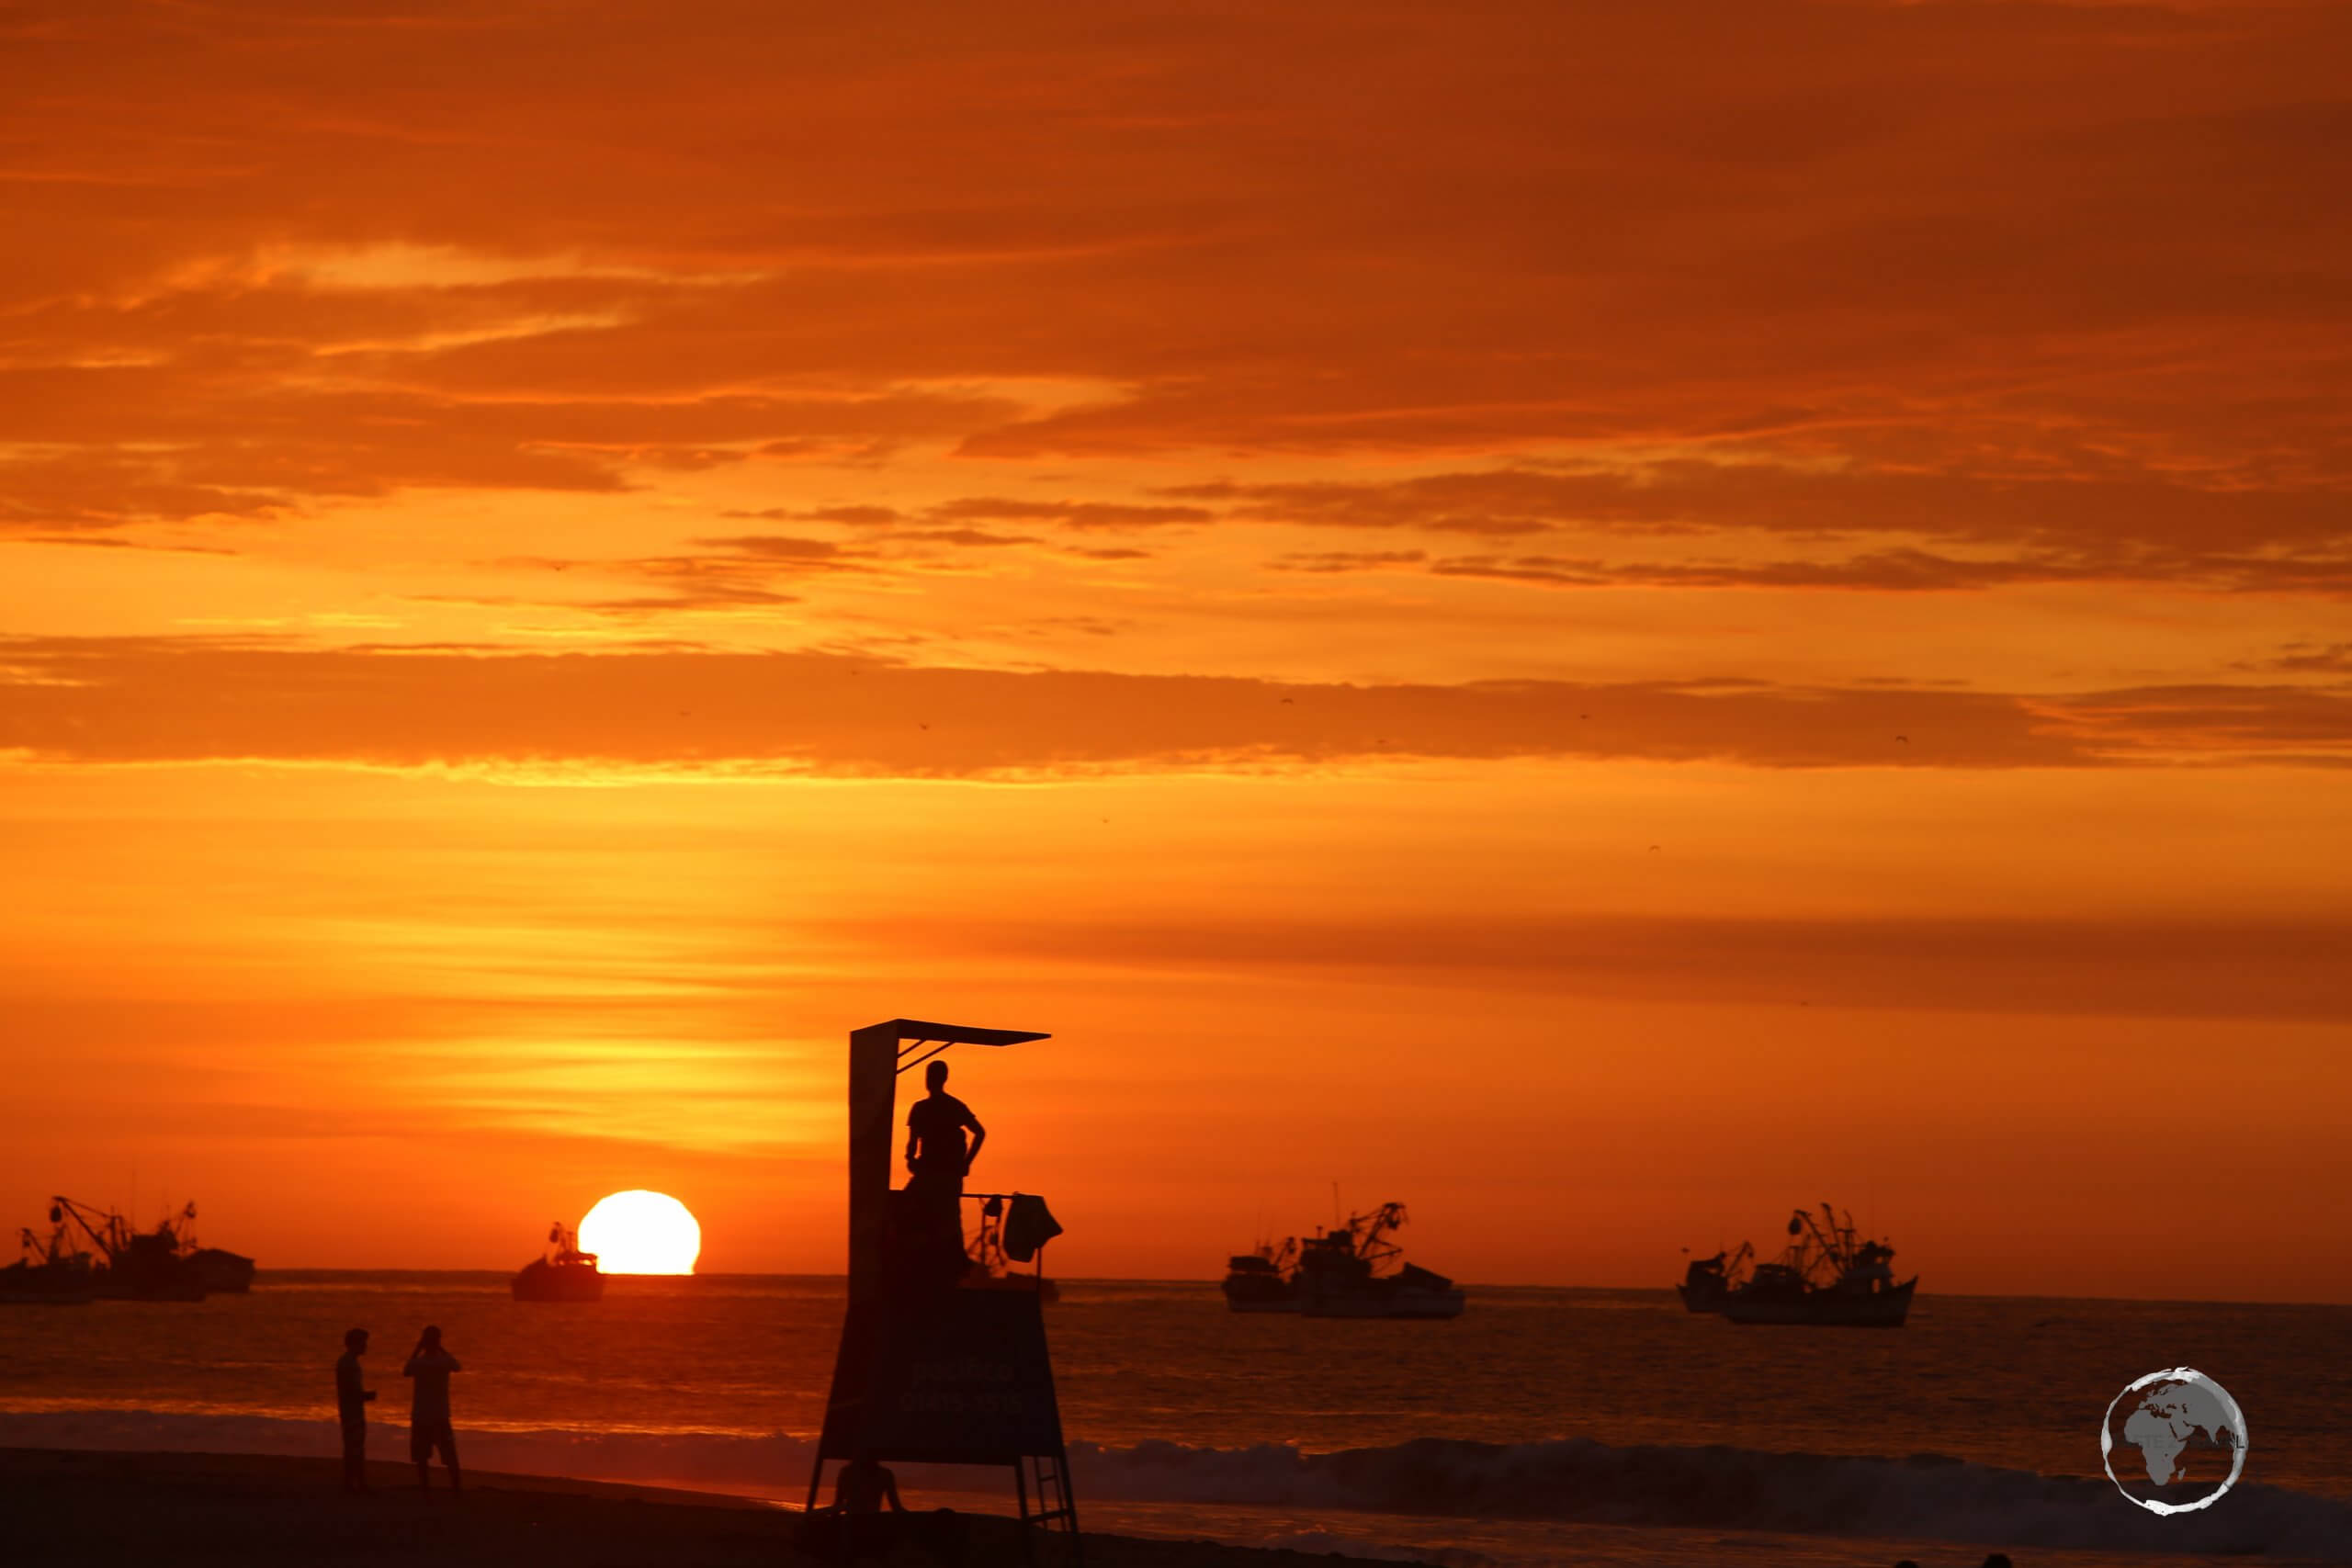 Sunset at Máncora, a resort town in the Piura Region, on Peru's northwest coast which is known for sandy Máncora beach, whose large waves attract surfers.